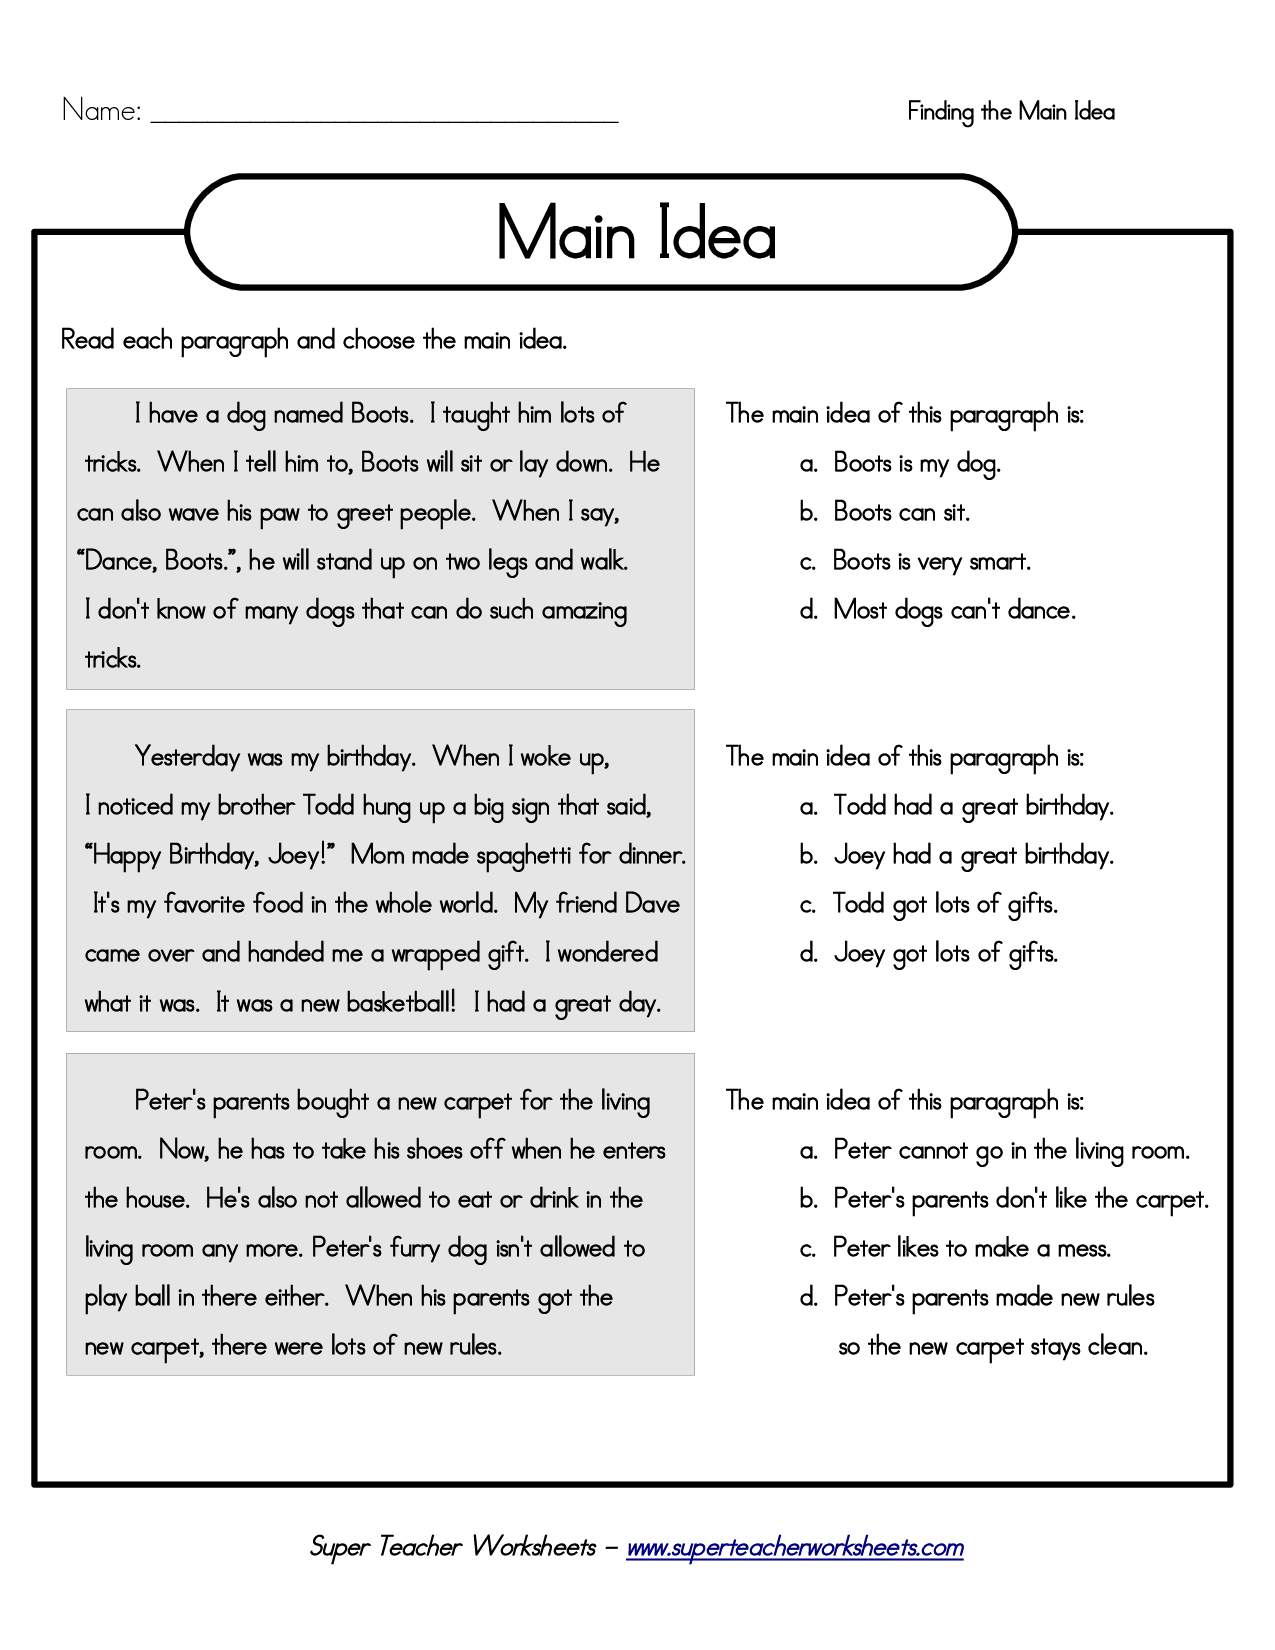 Free Worksheet Main Idea Worksheets 4th Grade 17 best images about reading main idea on pinterest graphic organizers student centered resources and pictures